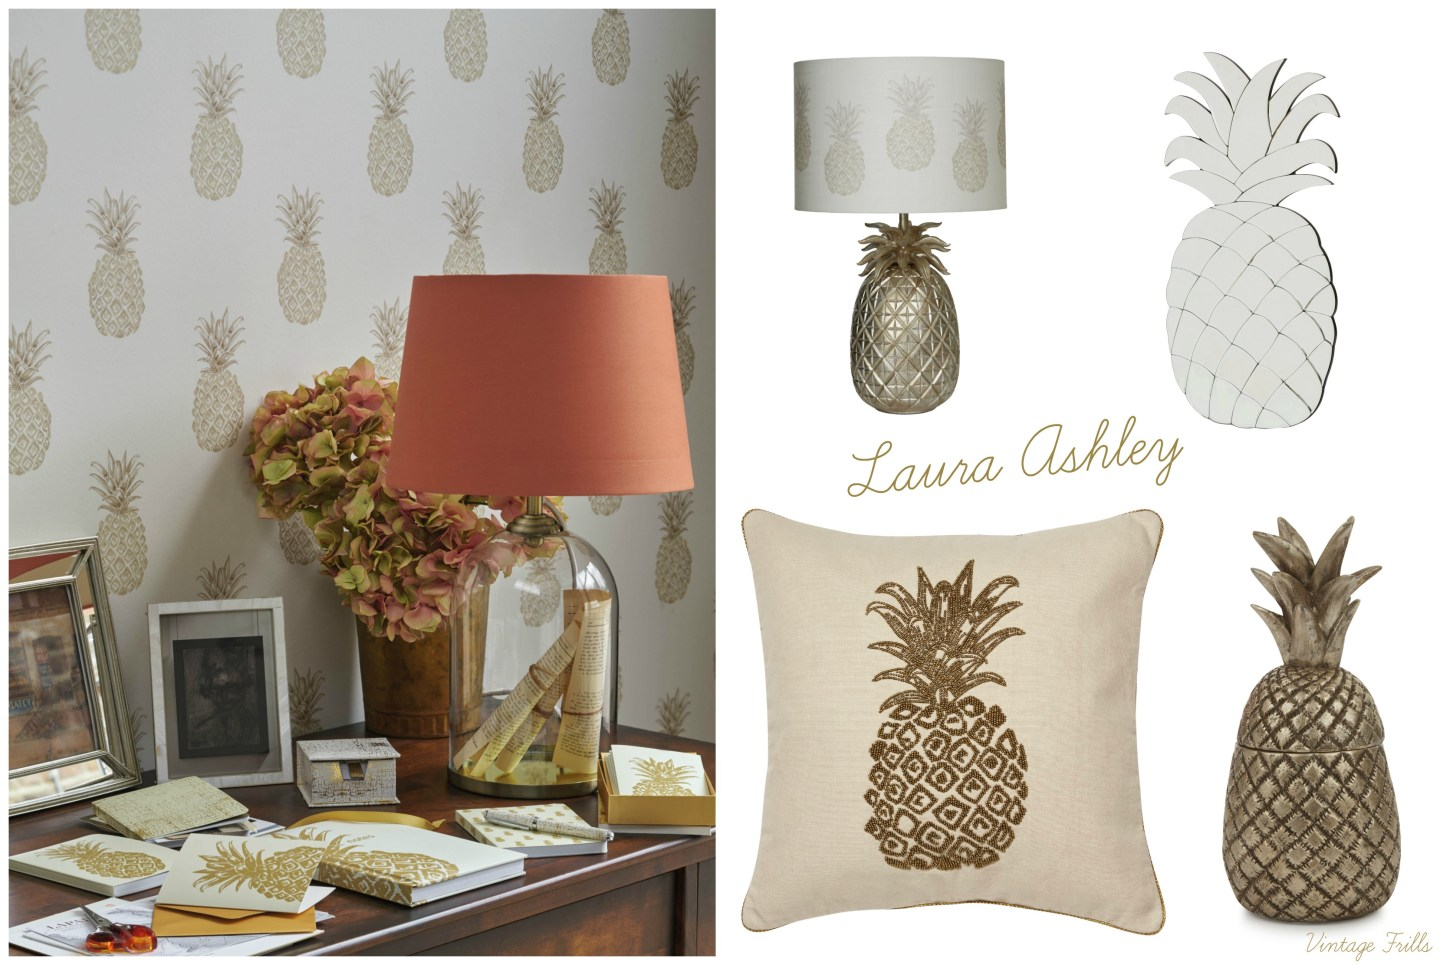 laura-ashley-pineapples